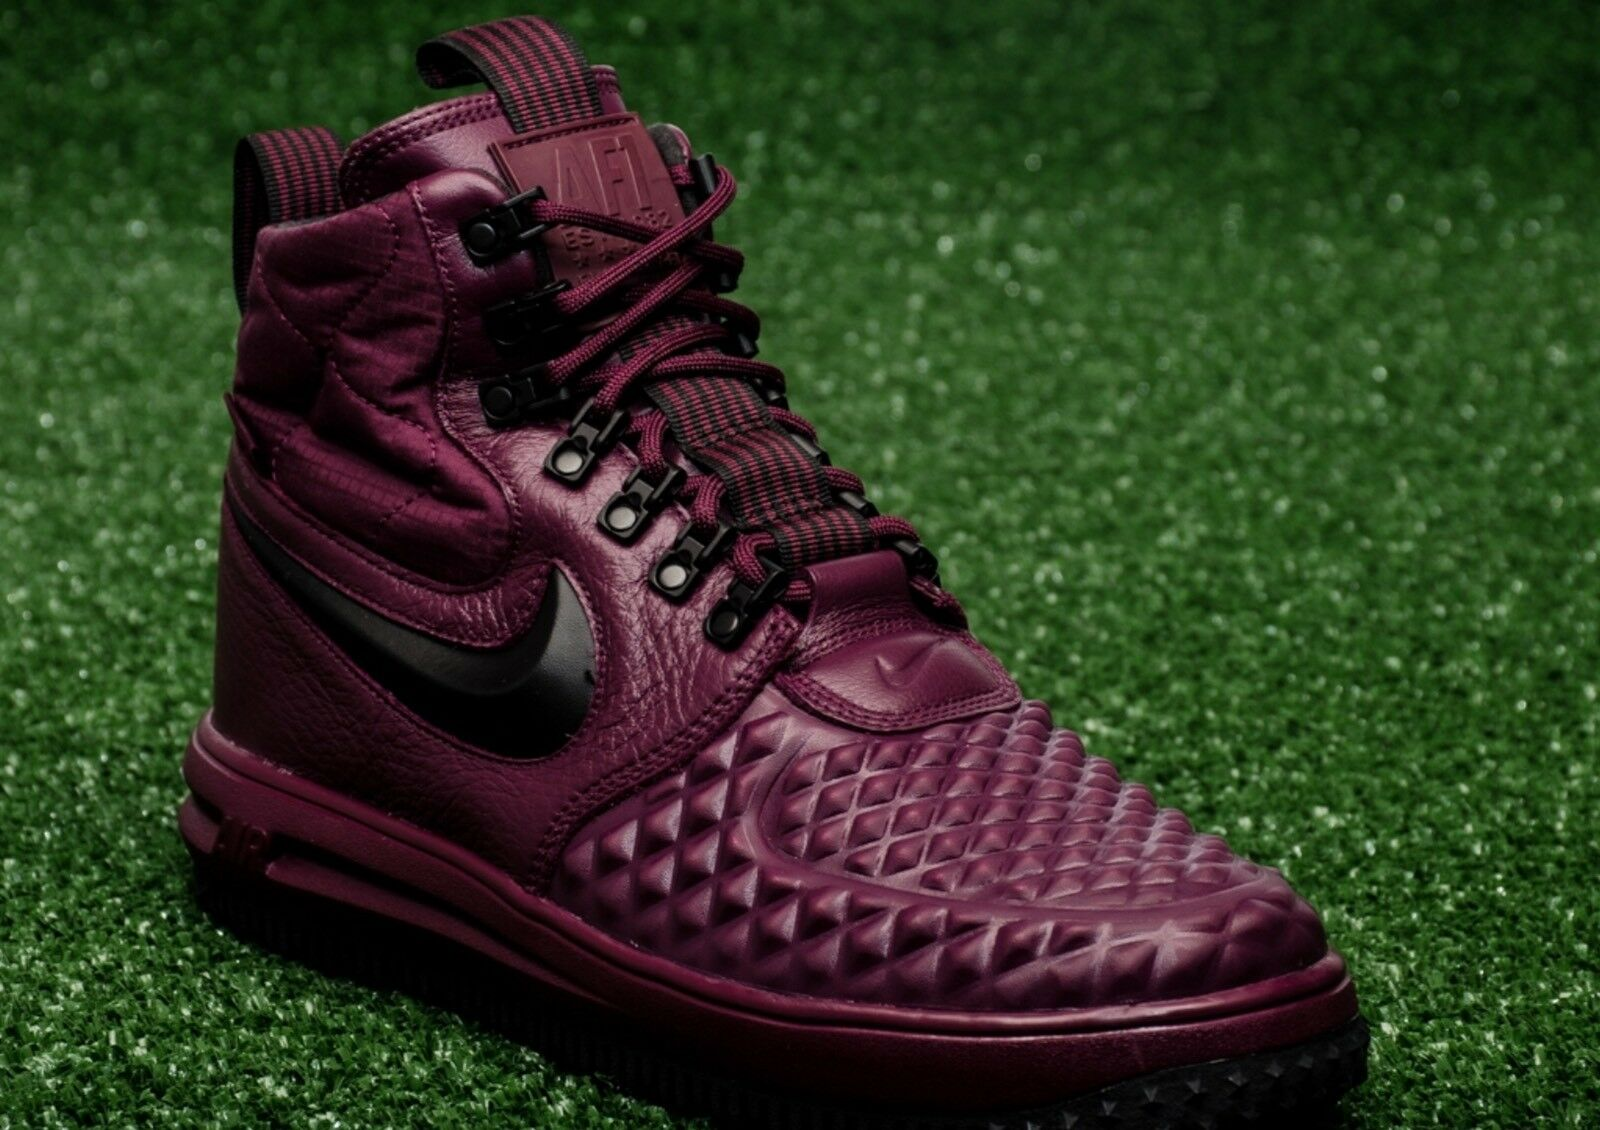 DS MENS NIKE AIR LUNAR FORCE 1 DUCK BOOT 17 Bordeaux 916682 601 Price reduction Great discount